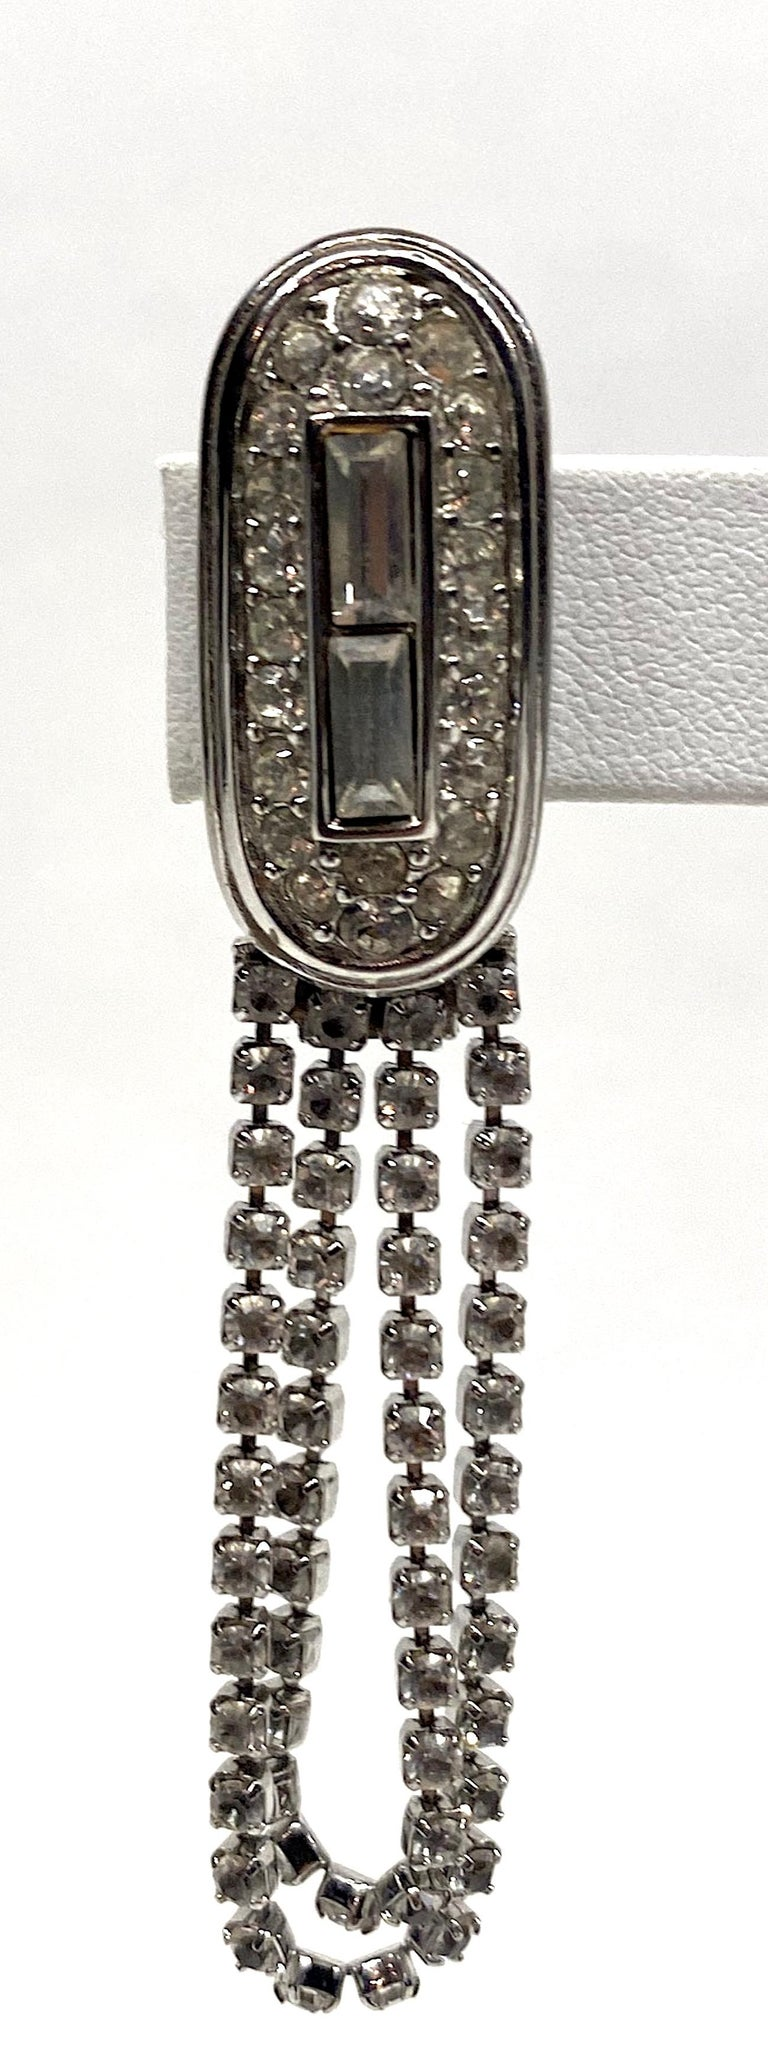 A lovely pair of 1980s Givenchy Art Deco style rhinestone loop fringe earrings in rhodium plate. Each earring is comprised of a .5 of an inch wide and 1.13 of an inch long oval top piece. It is set with two rhinestone baguettes down the center and